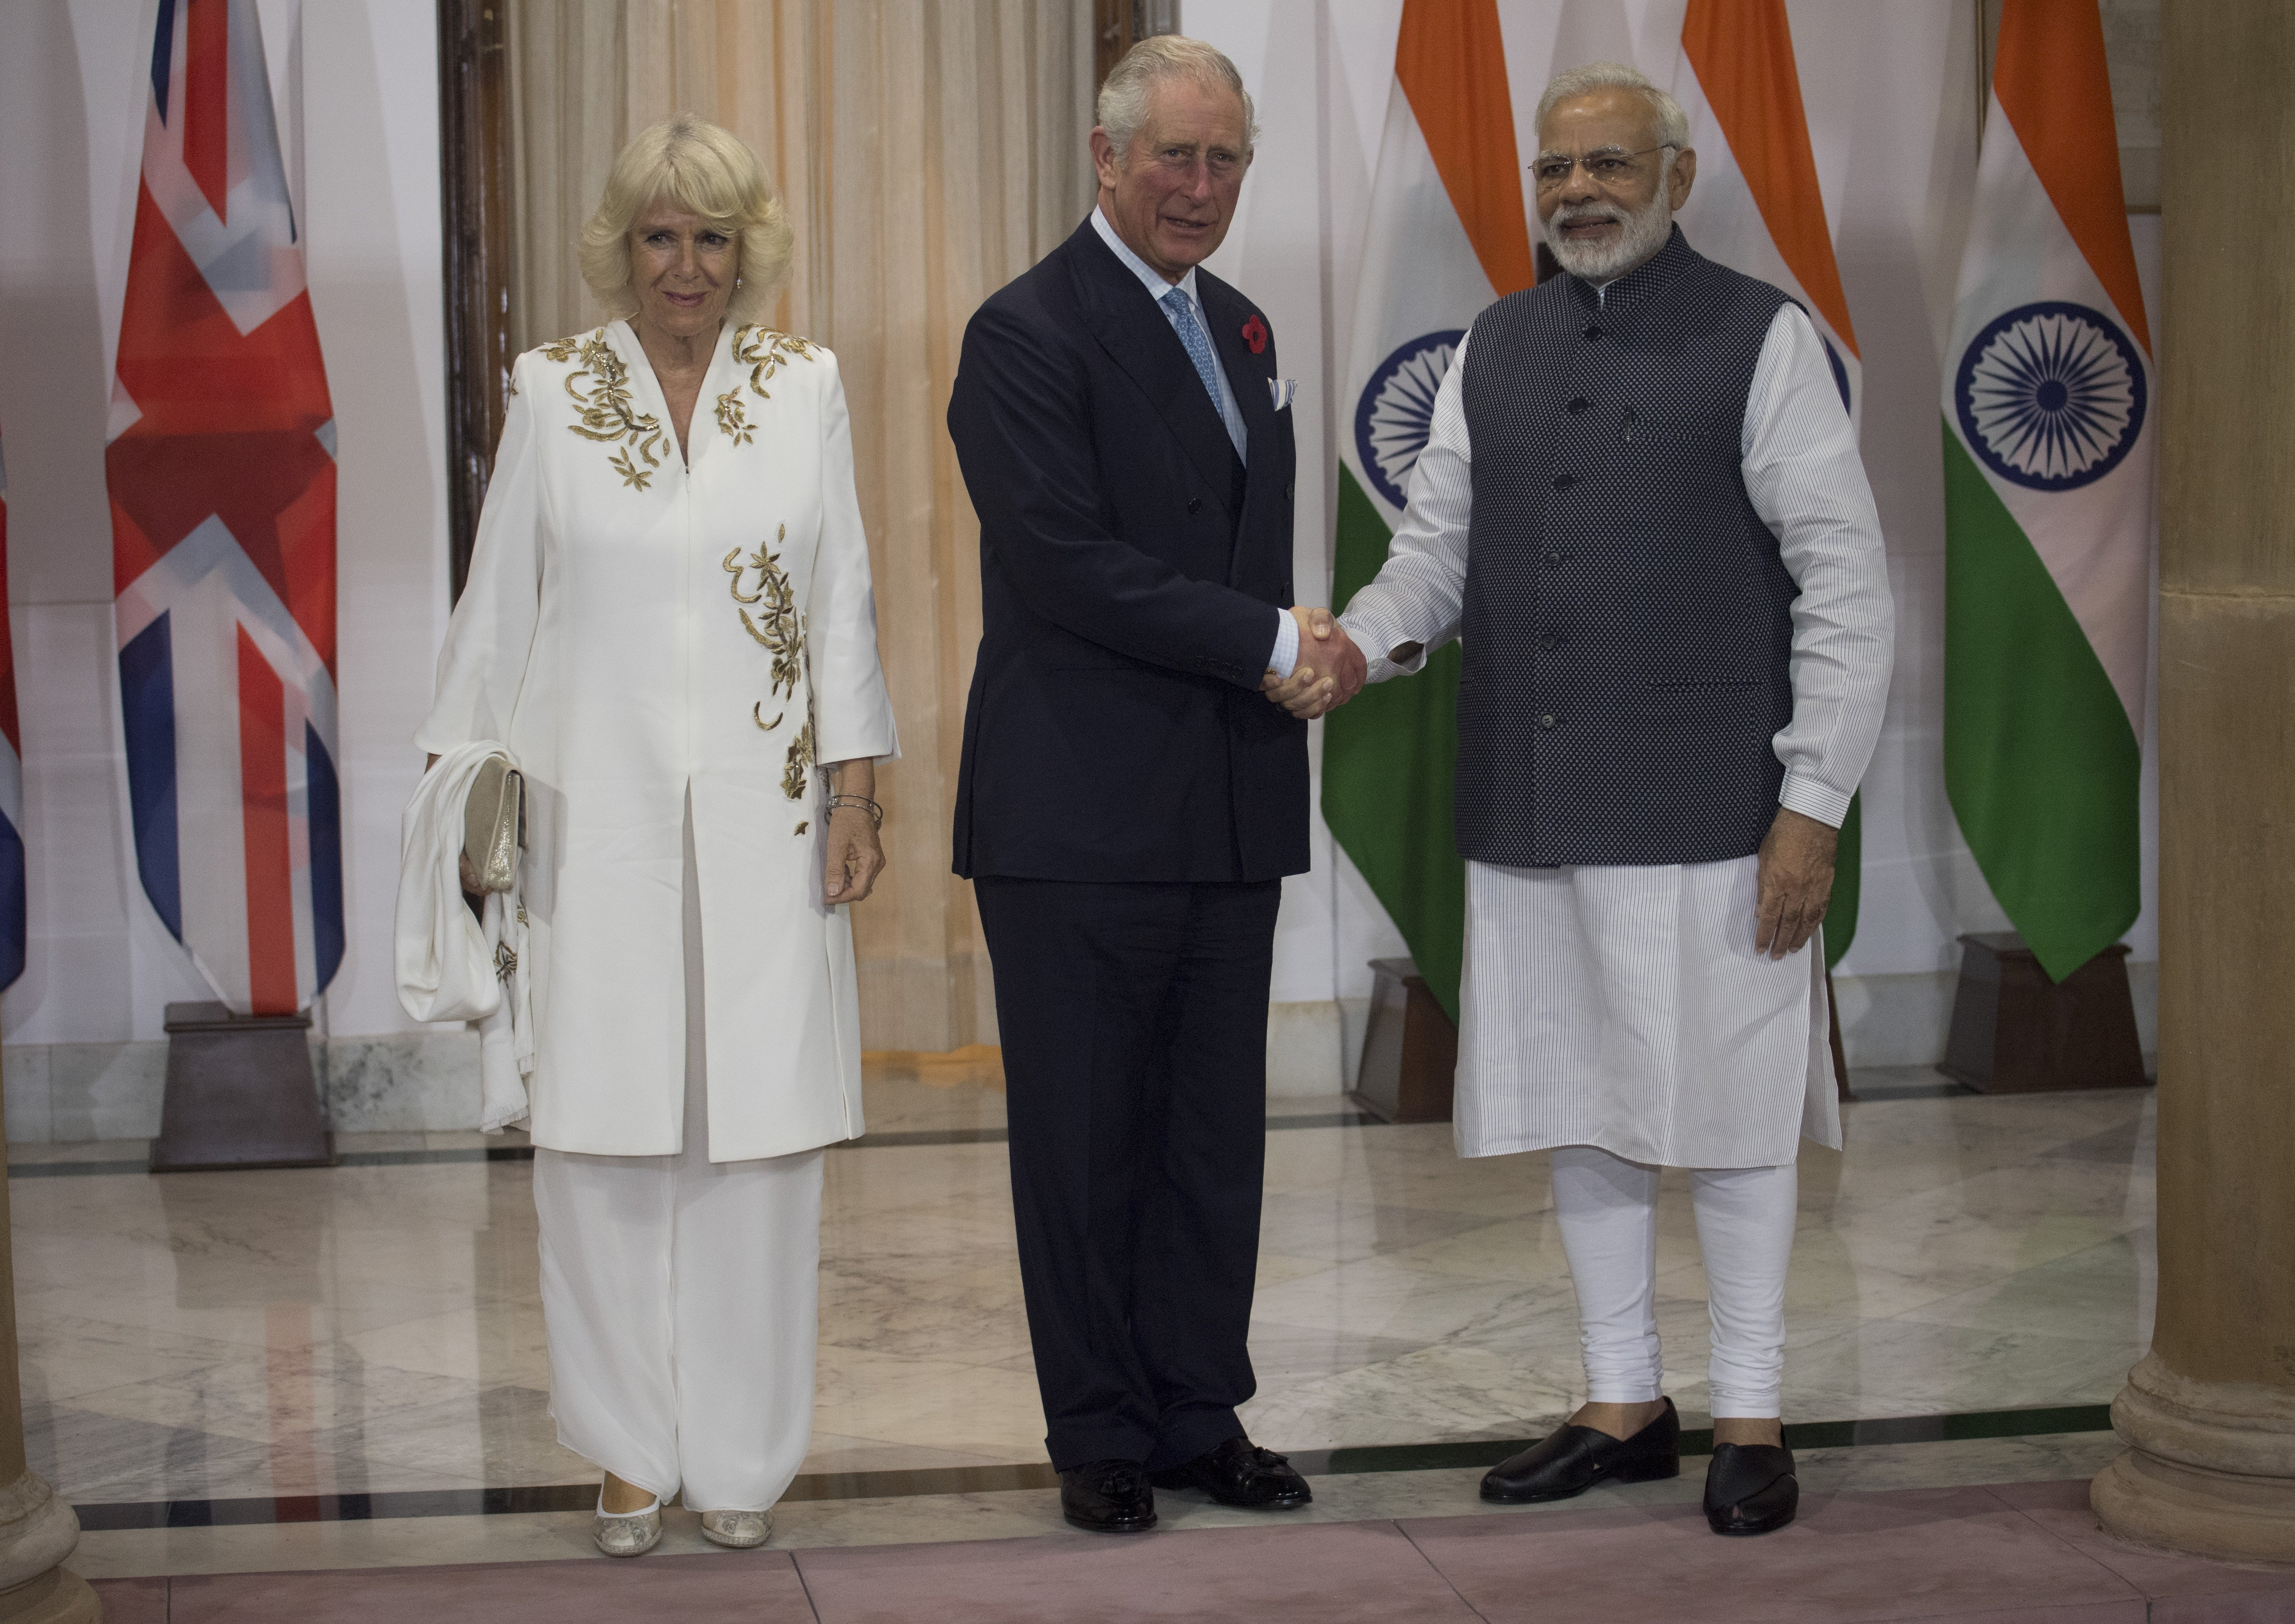 Prince Charles and Camilla are greeted by Mr Narendra Modi, Prime Minister of India at Hyderabad House  on November 9, 2017 in New Delhi, India. | Source: Getty Images.